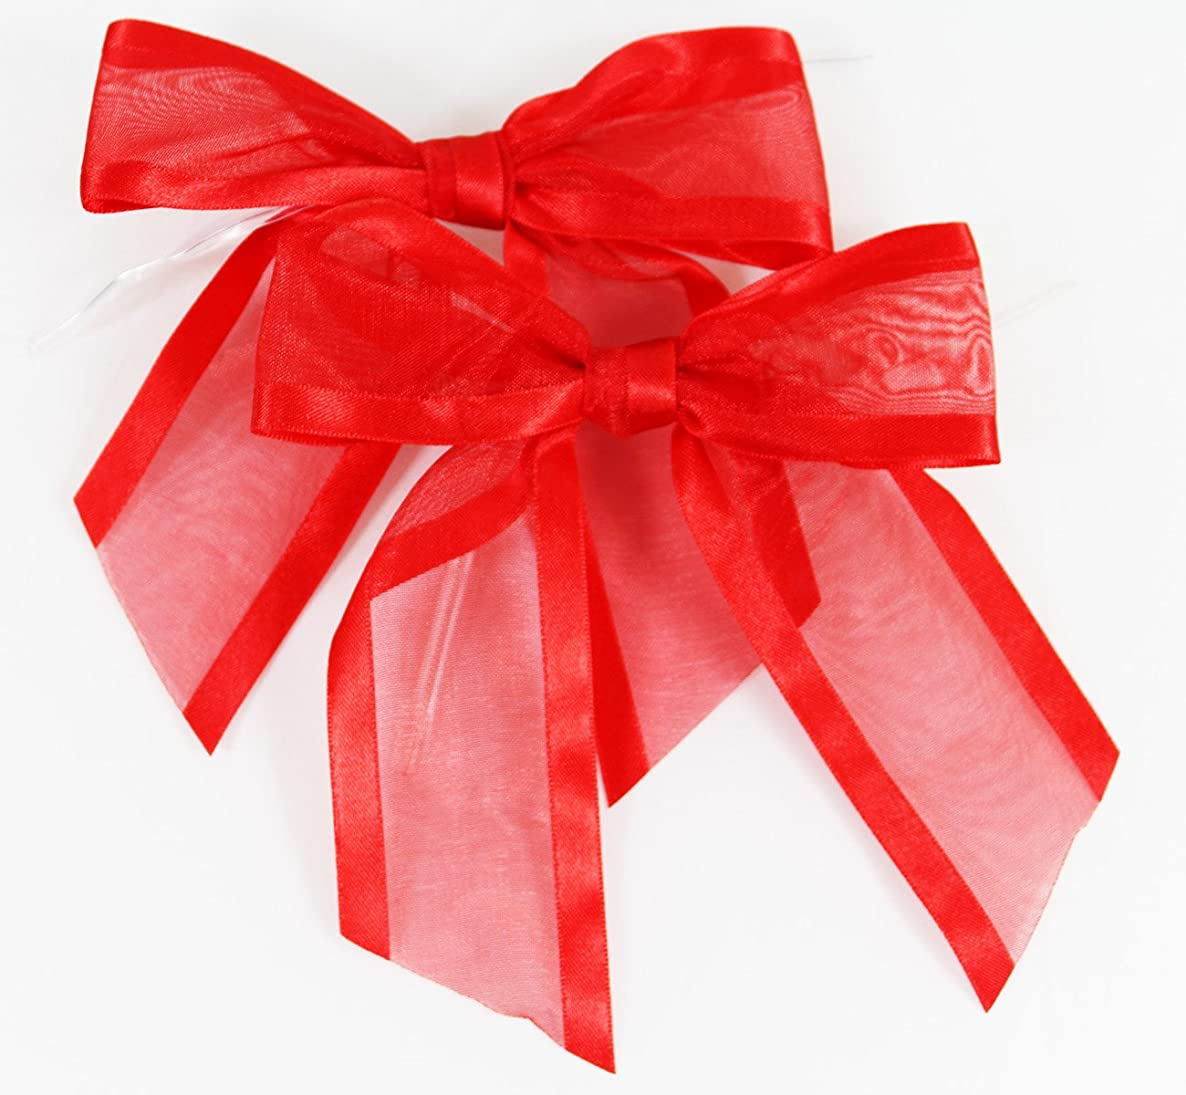 Red Pre-Tied Organza Bows with Twist Ties. Pack of 12 Satin-Edged Fabric Bows Made of 1-1/2